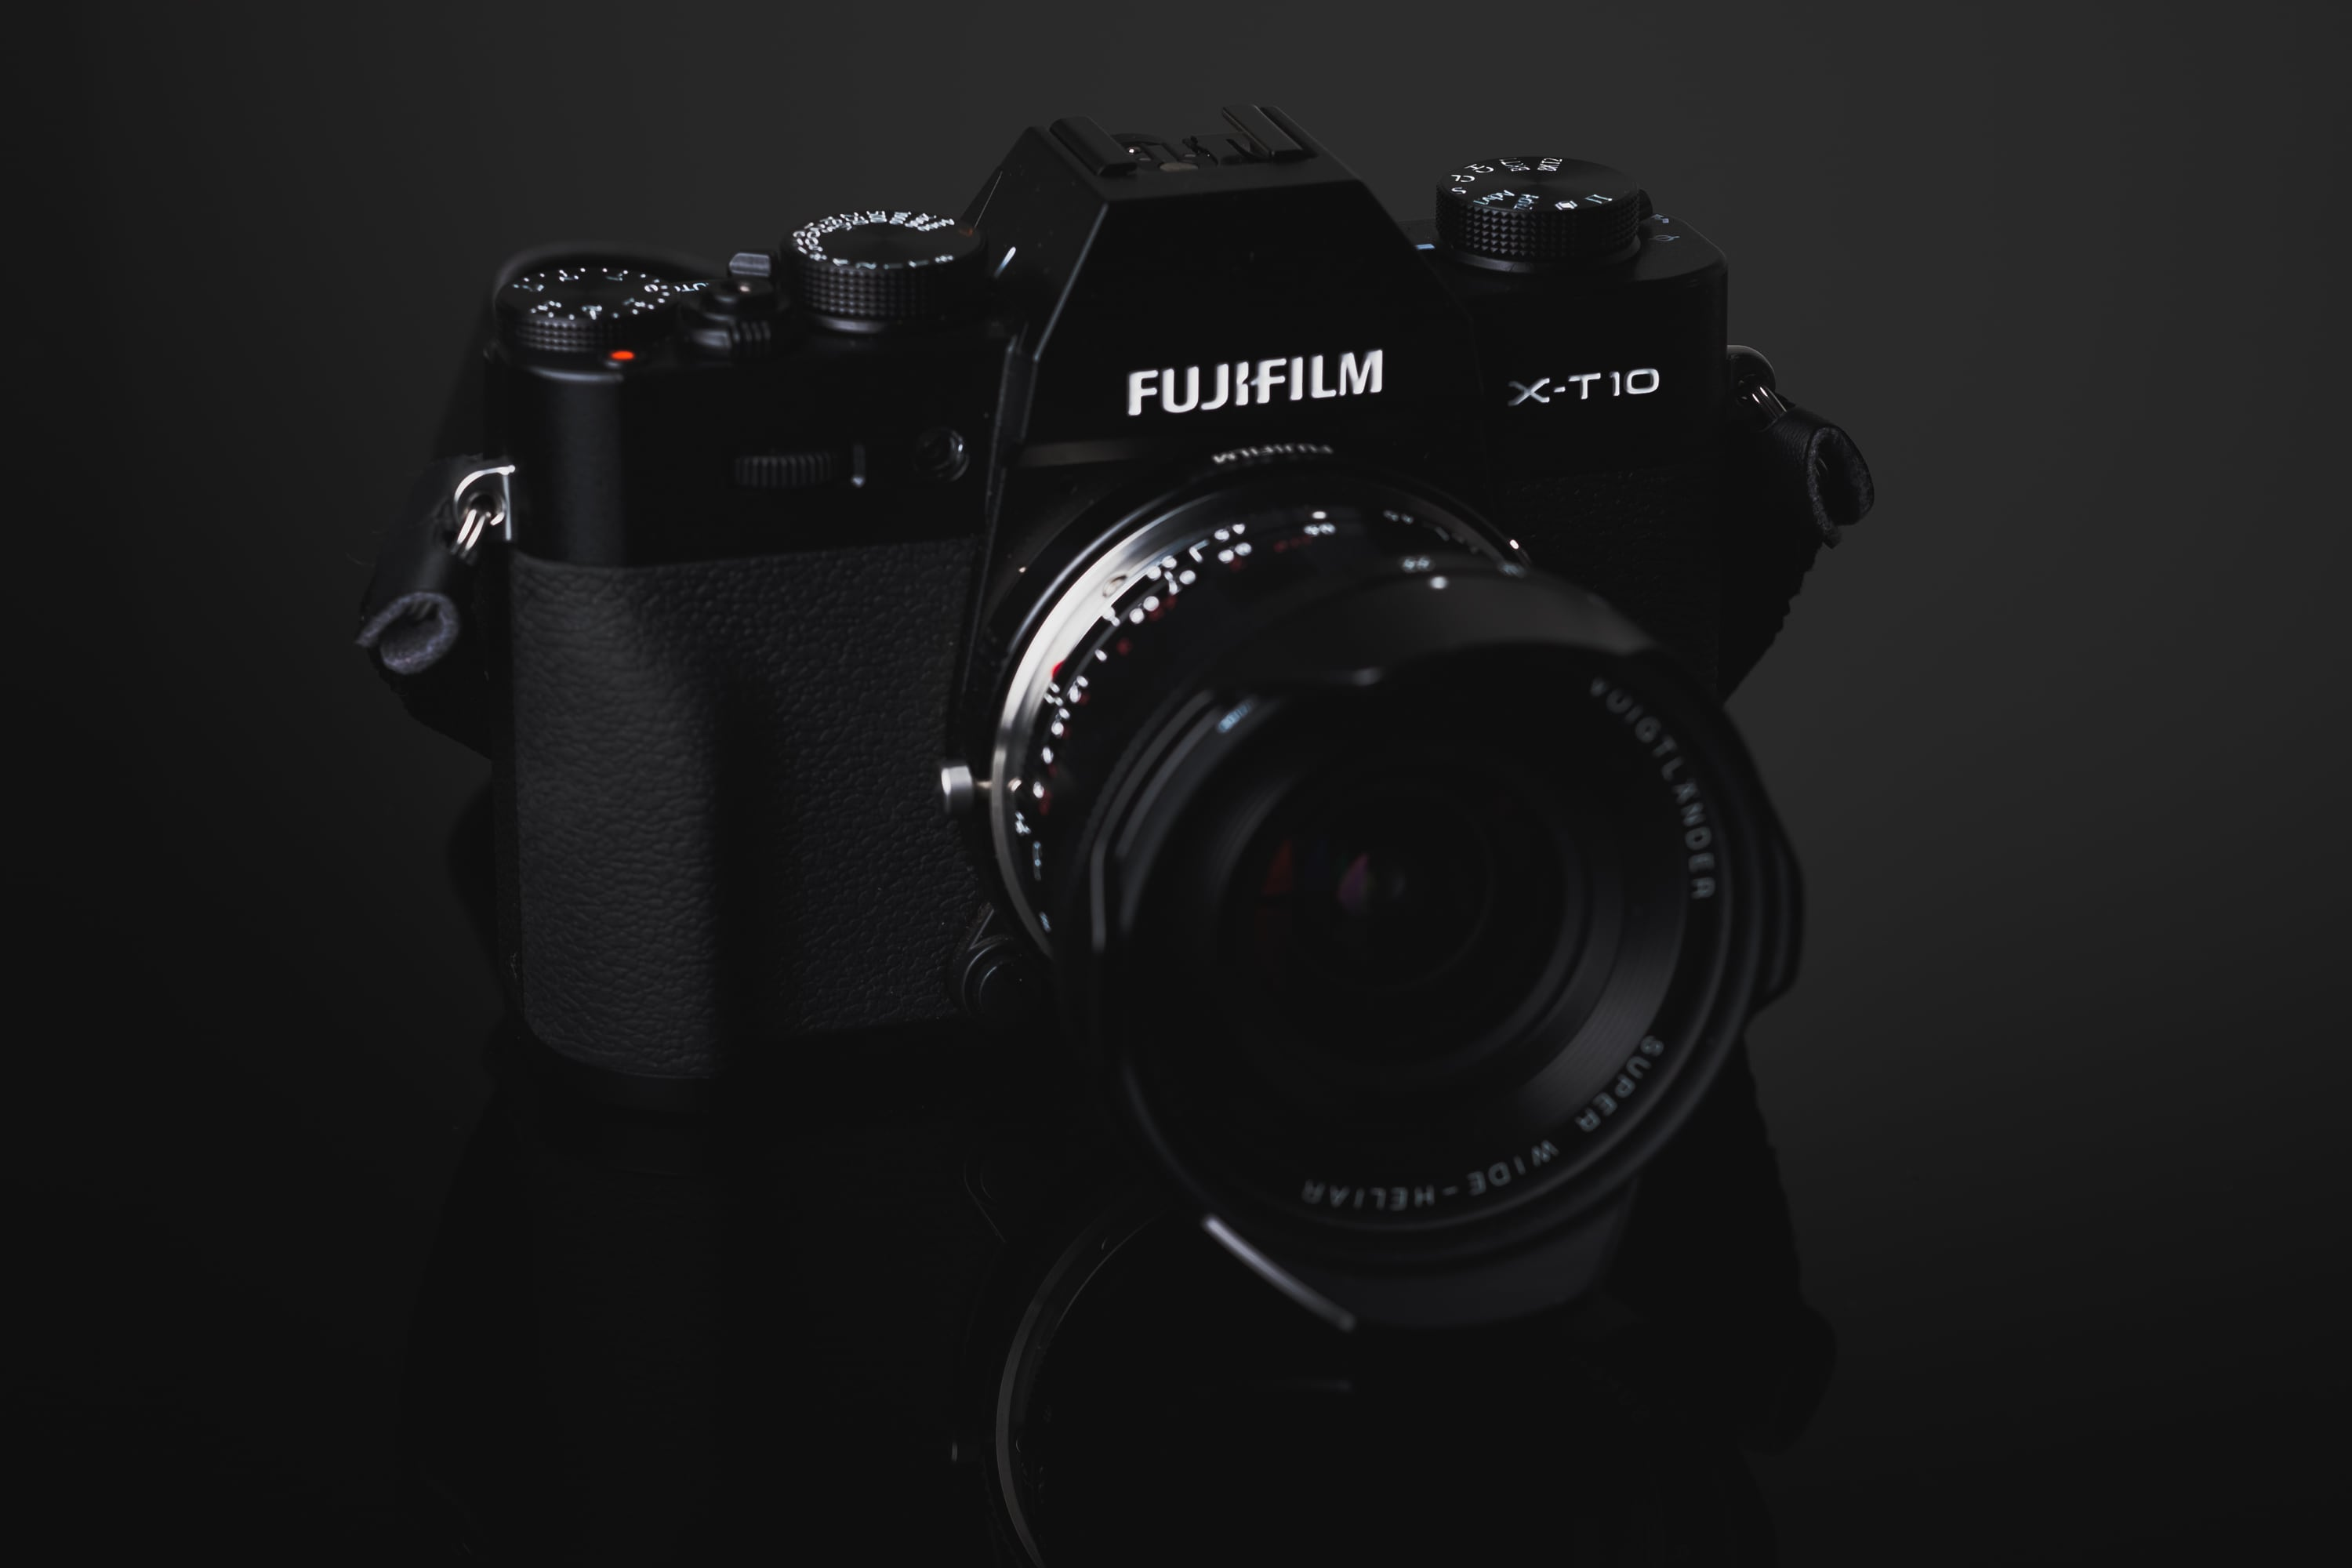 Fujifilm XT20 Accessories | Fujifilm XT10 Accessories